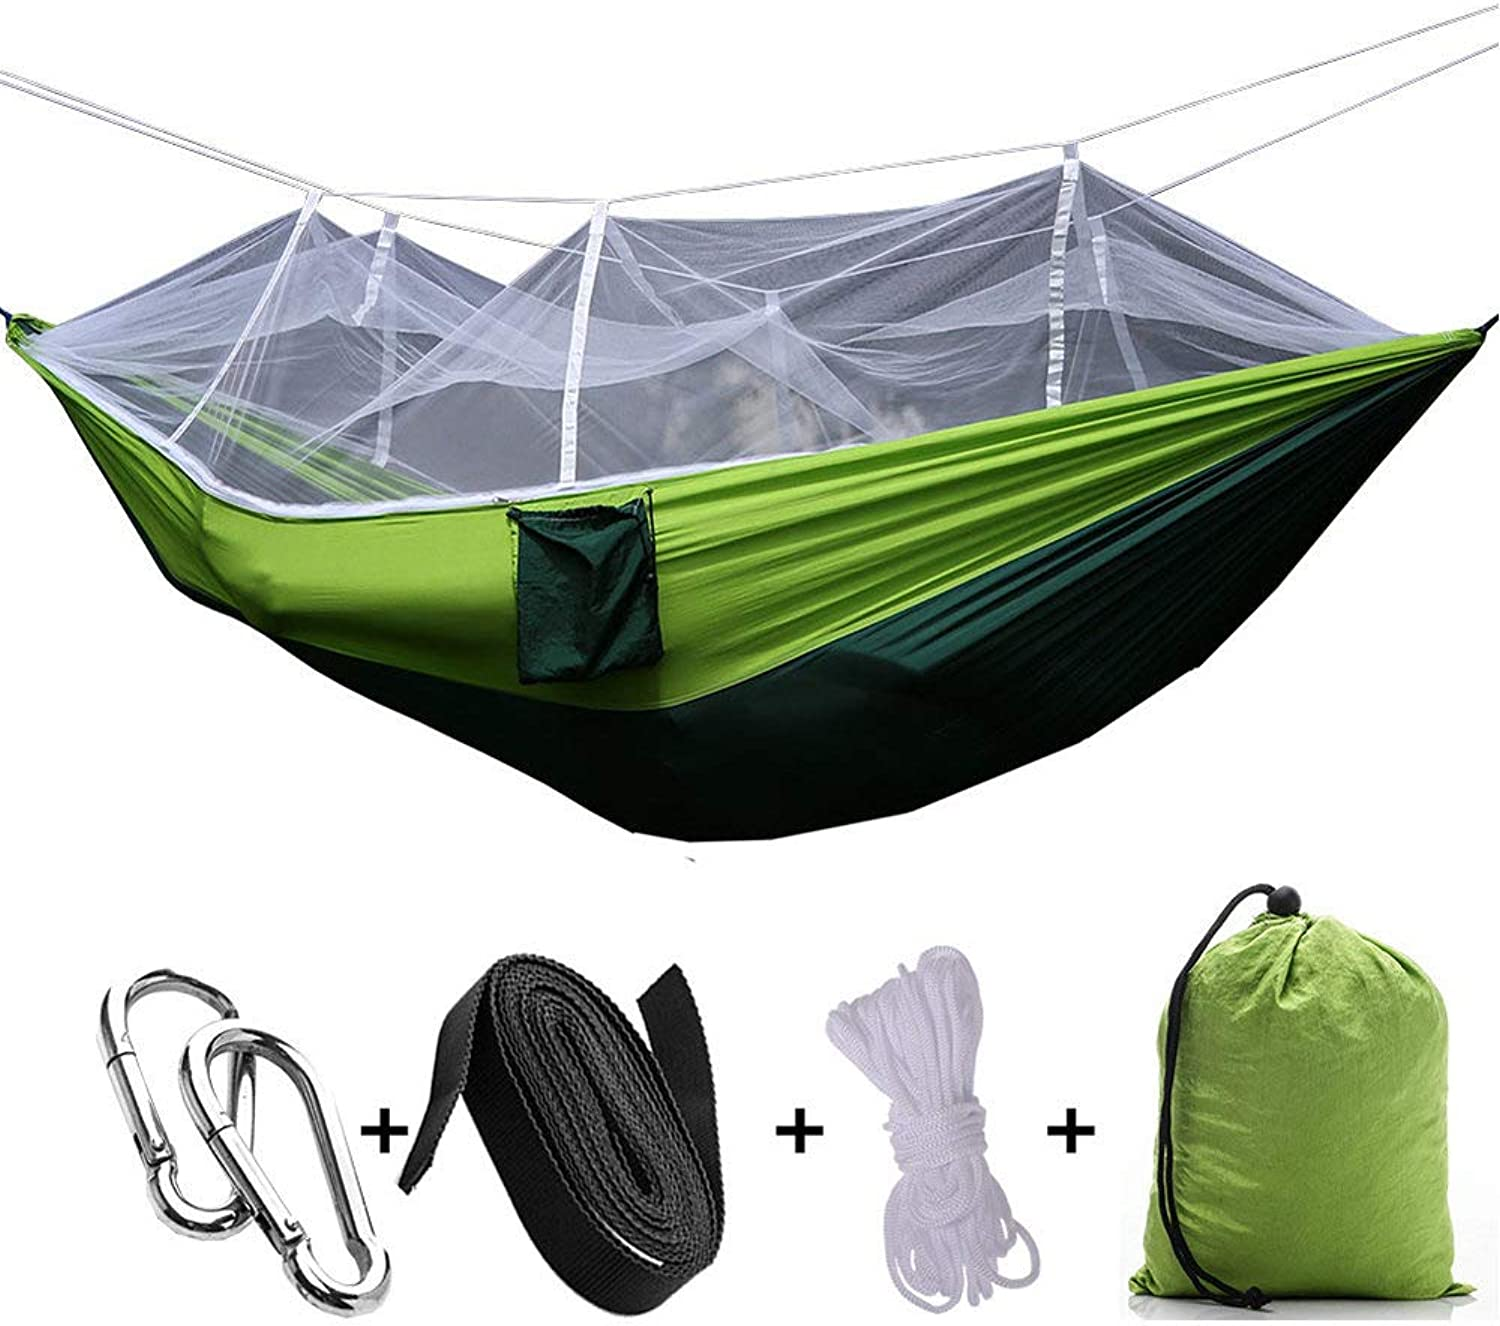 Widened and Extended Double Mosquito Net Hammock Camping Camping Aerial Tent 102.36X55.12In,Fruitgreendarkgreen